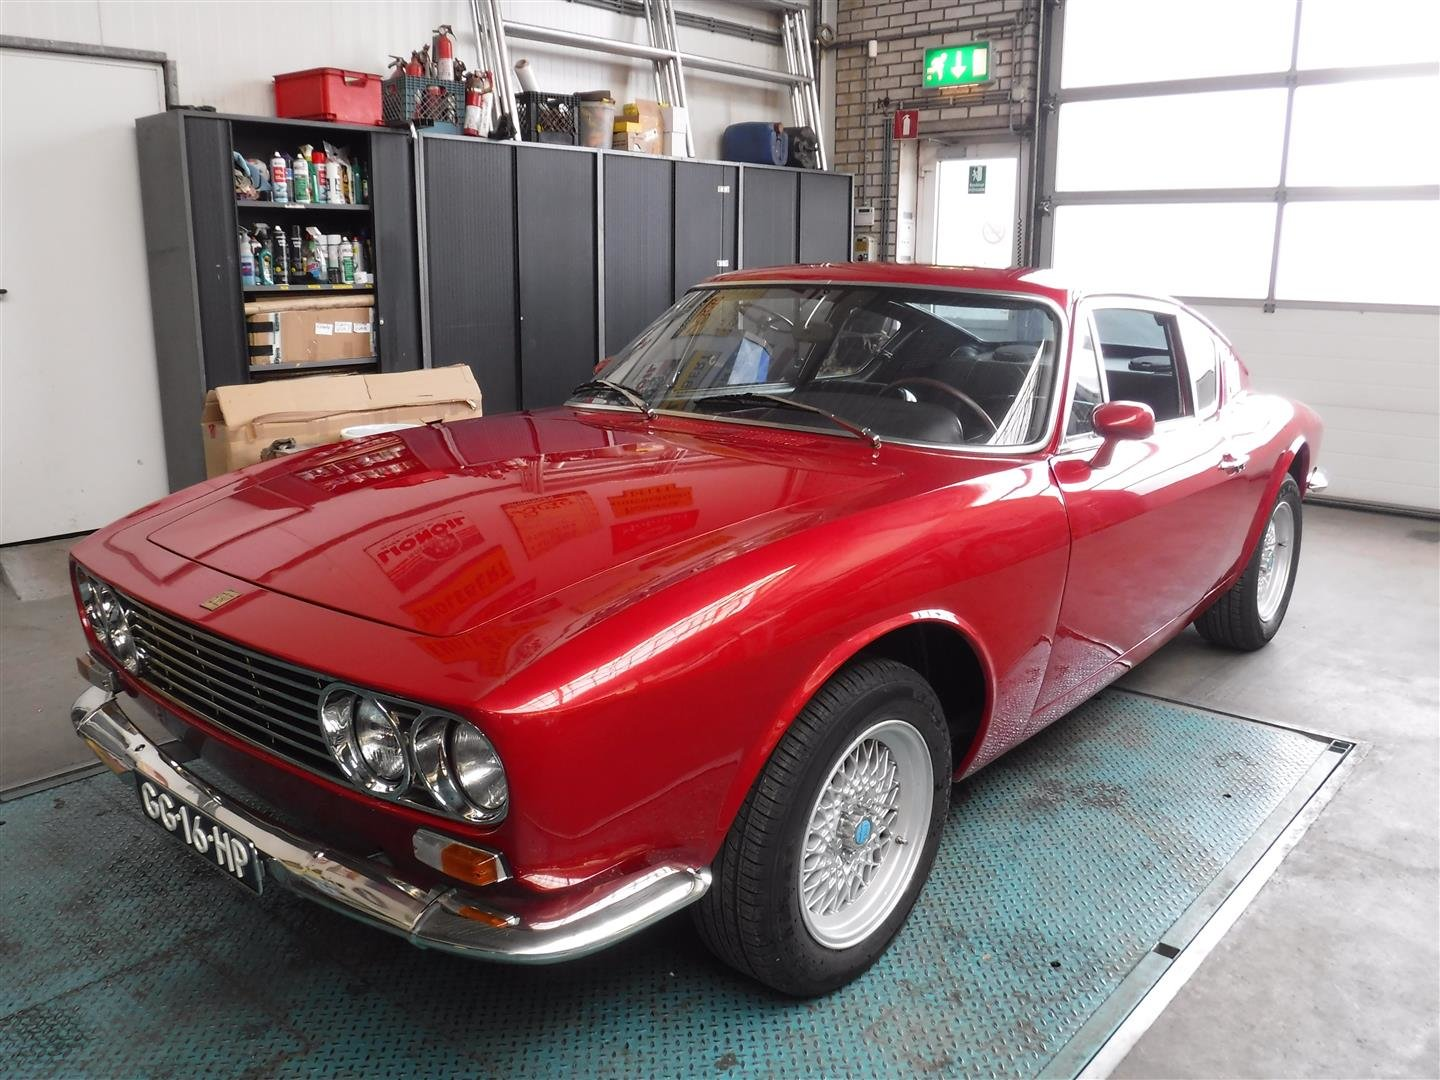 OSI  20 M TS coupe  1968 For Sale (picture 6 of 6)